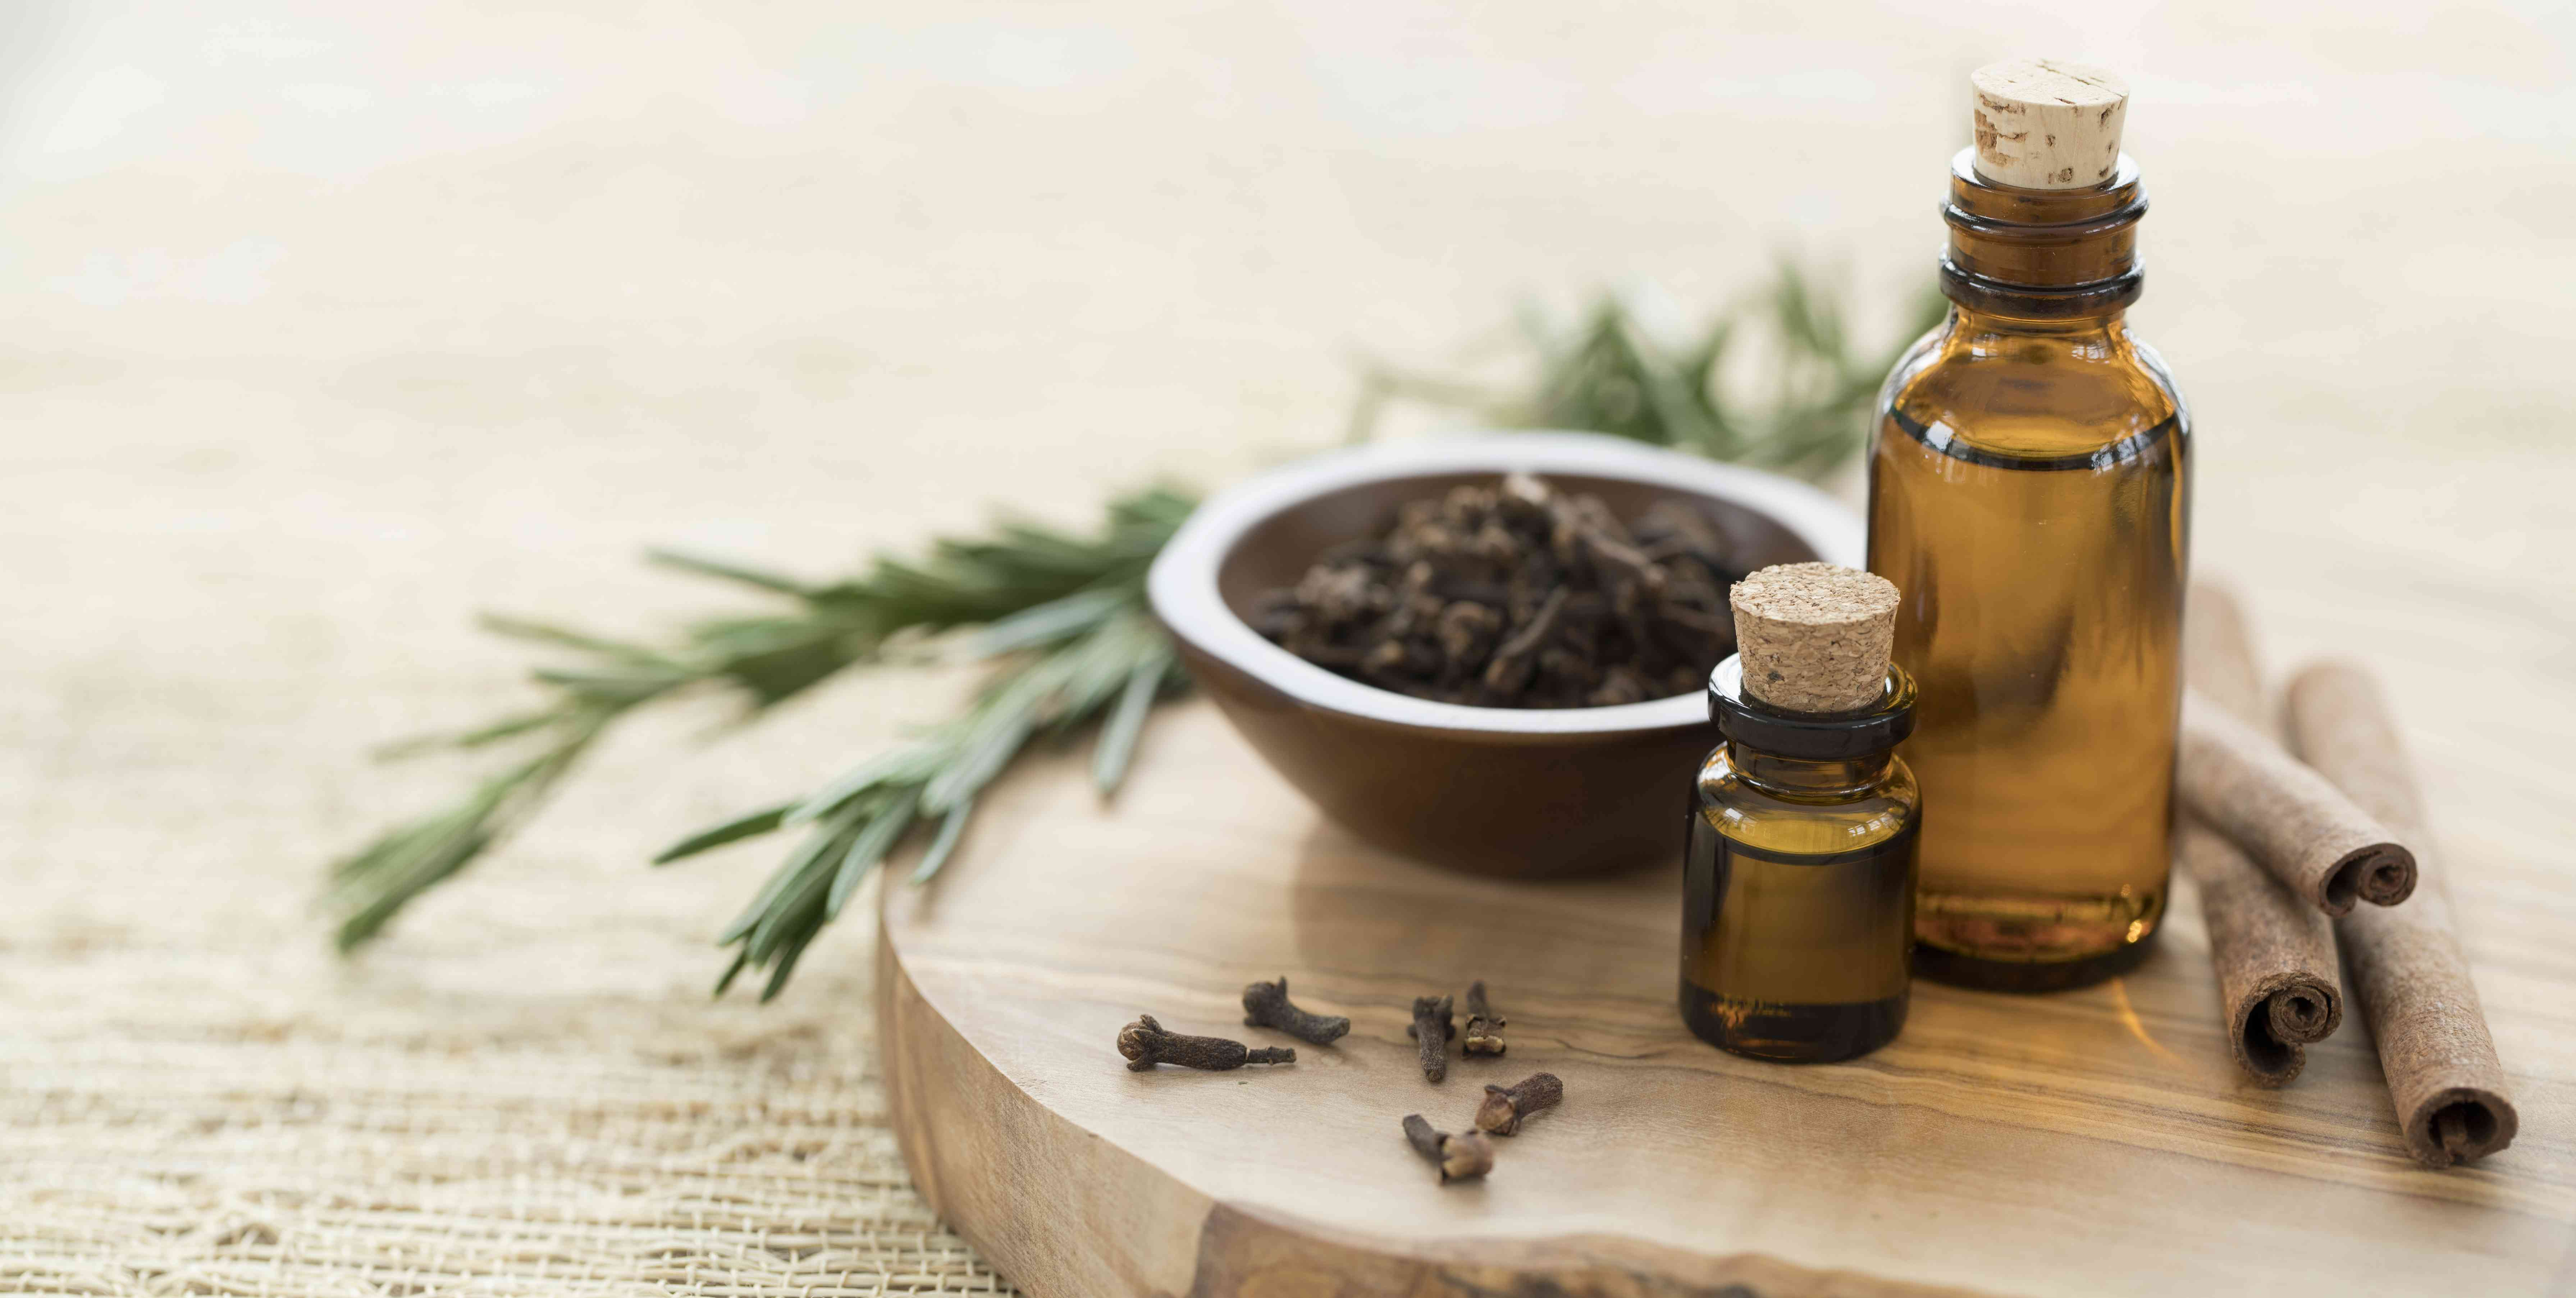 Essential Oils with Rosemary, Cloves & Cinnamon.